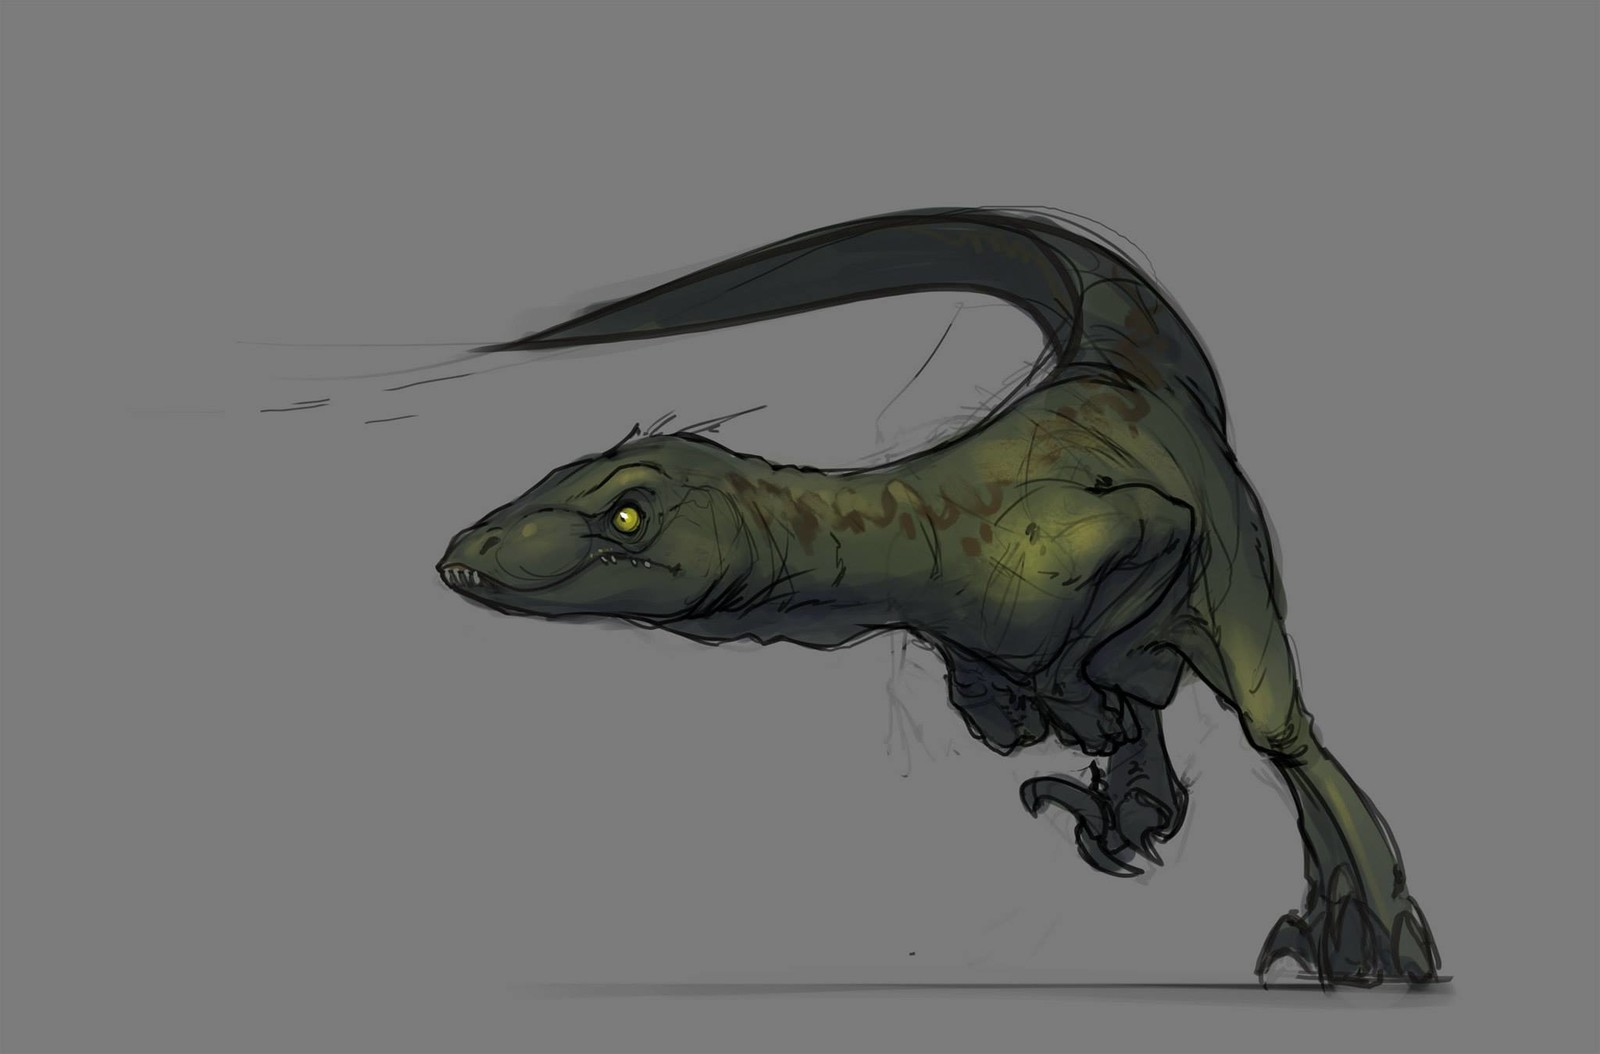 The underlying sketch preparing for the final illustration. I'd never done a dinosaur before so it involved a lot of reference and doodles before this sketch and the following final image.